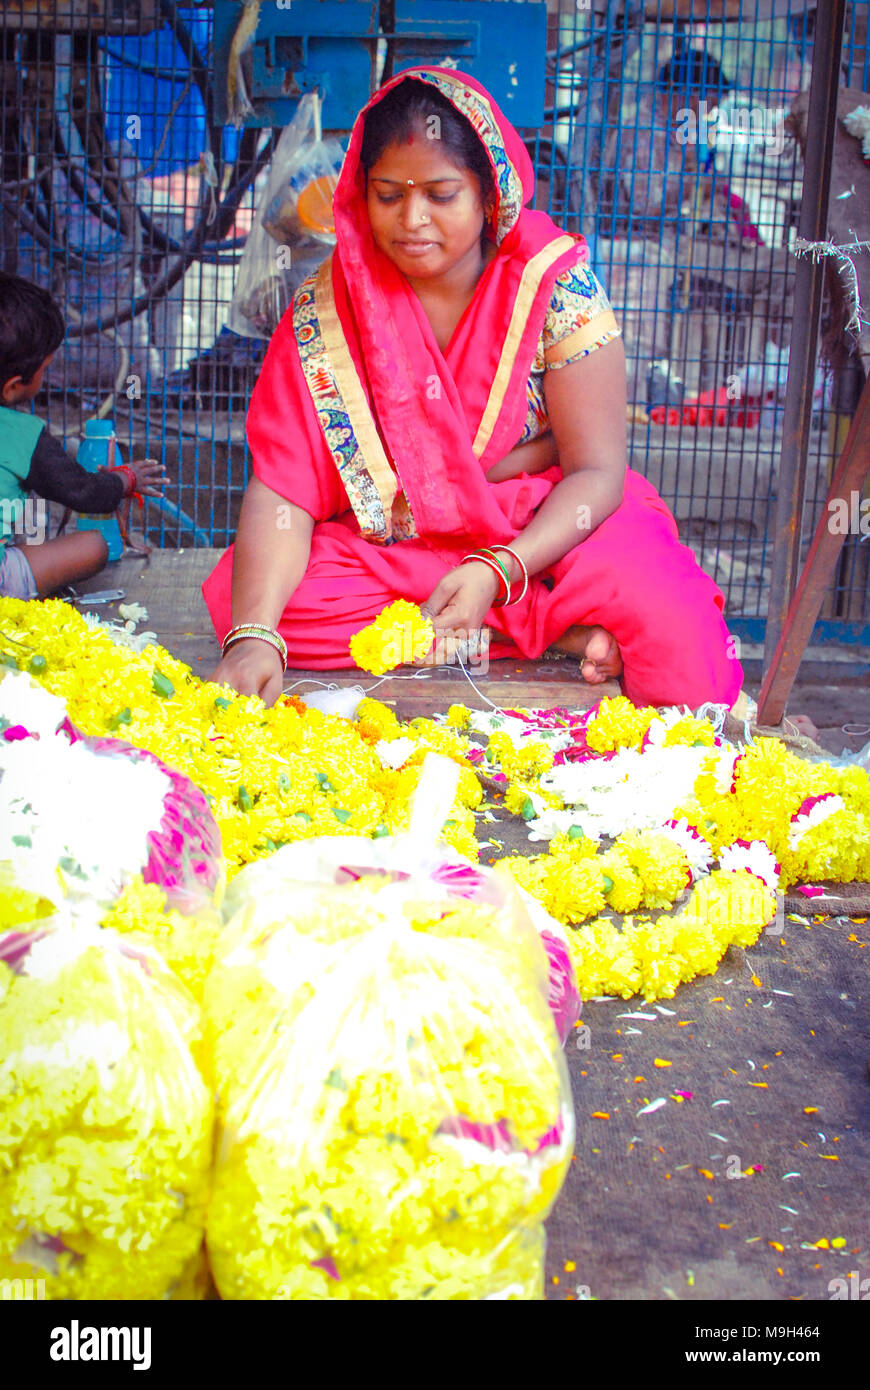 A female florist preparing garlands in a local street market of New Delhi, India. September 29, 2017. - Stock Image